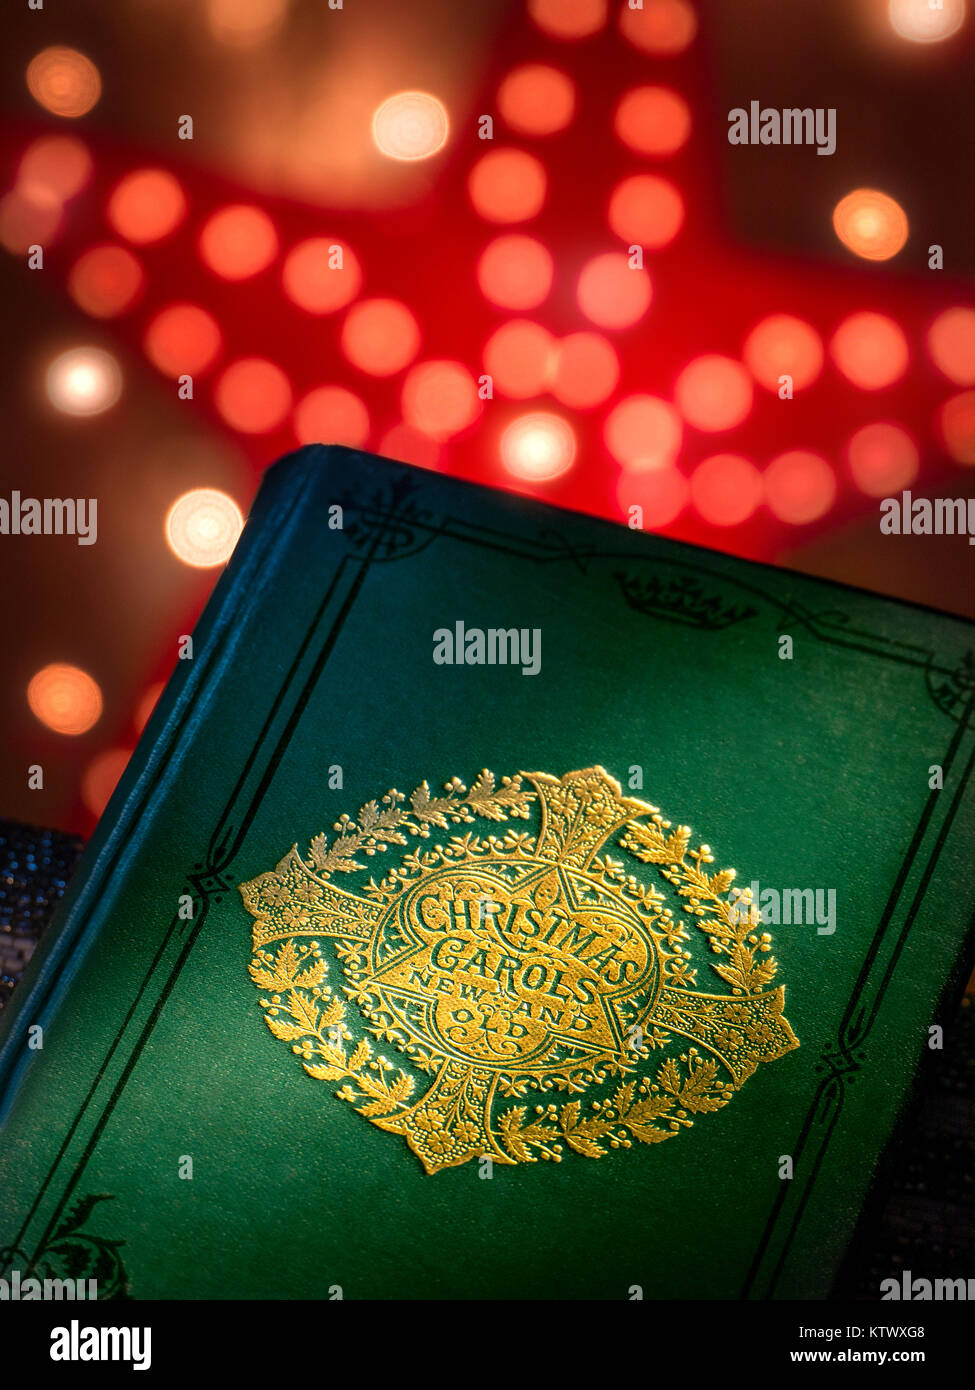 Christmas Carols 'New and Old' music book cover with warm inviting festive Christmas lights behind - Stock Image